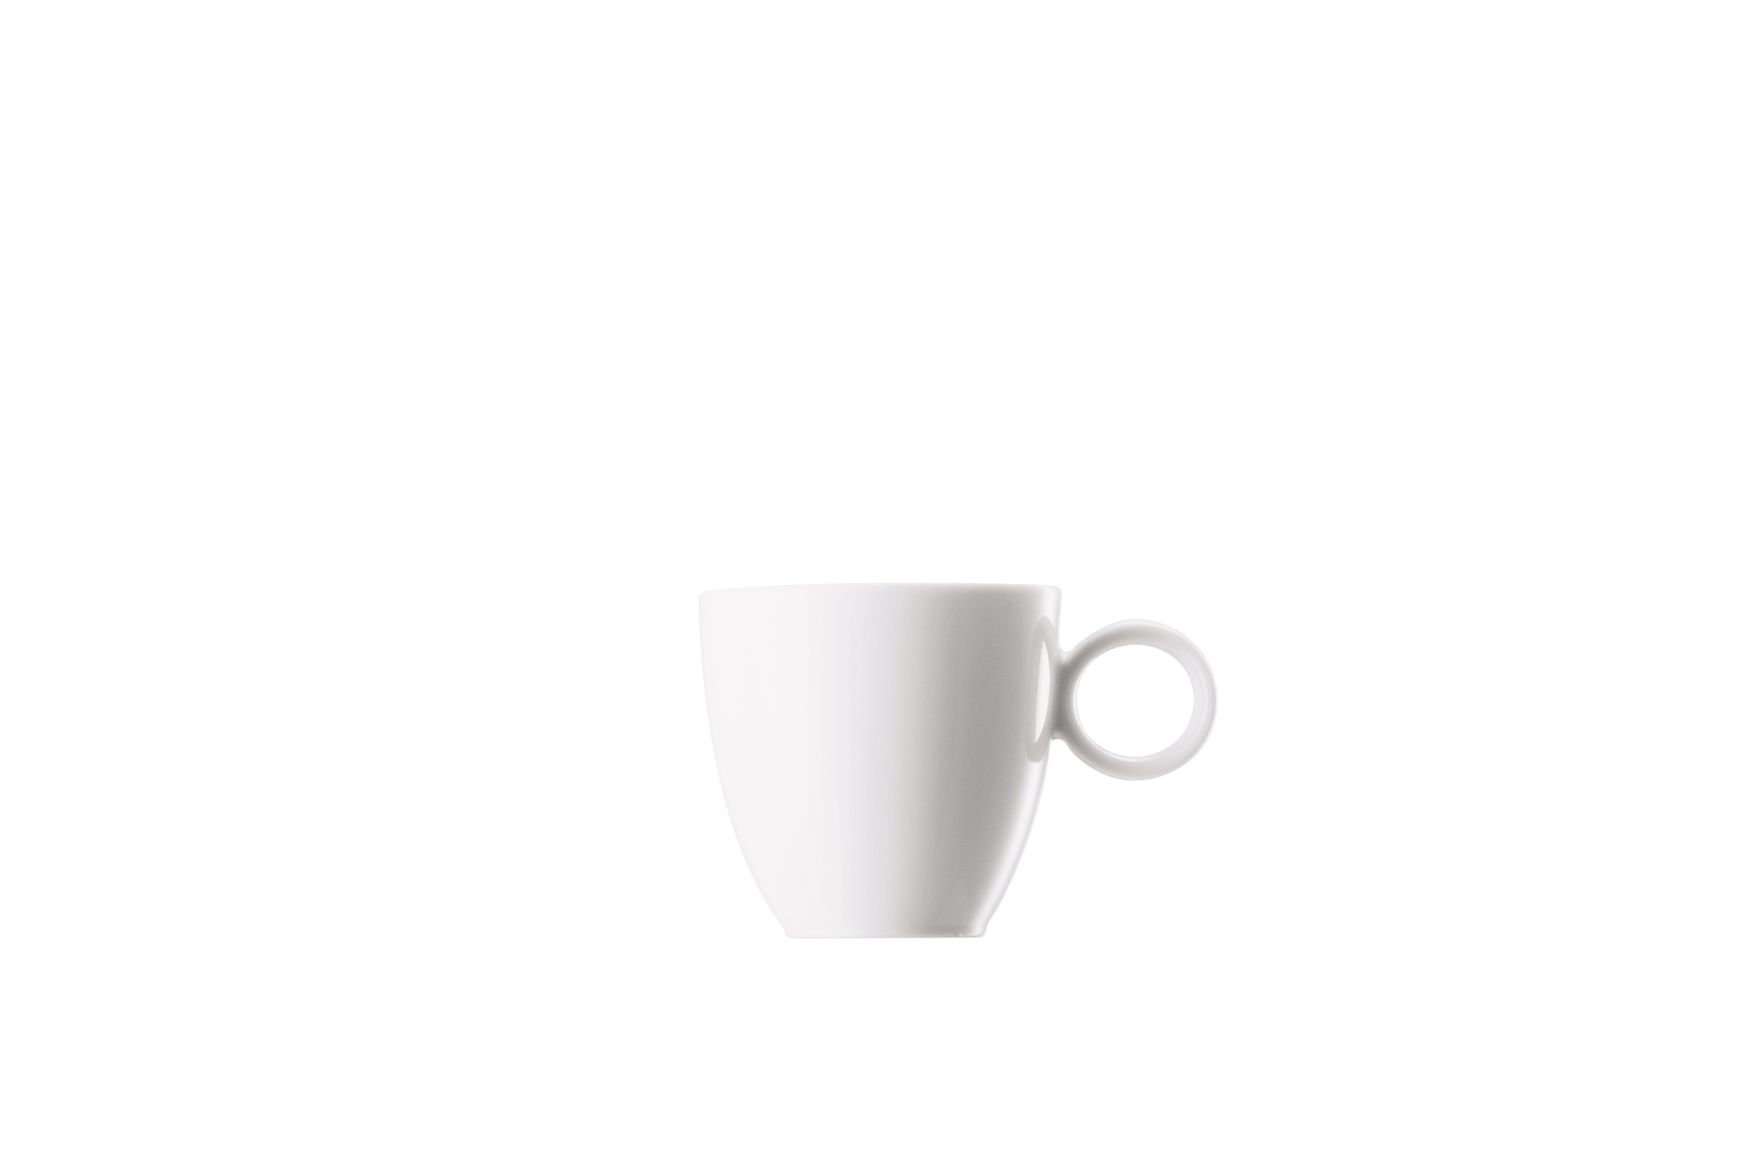 "Thomas Vario - Pure Coffee Cup 2 1/2 x 2 3/8"" thumb 1"